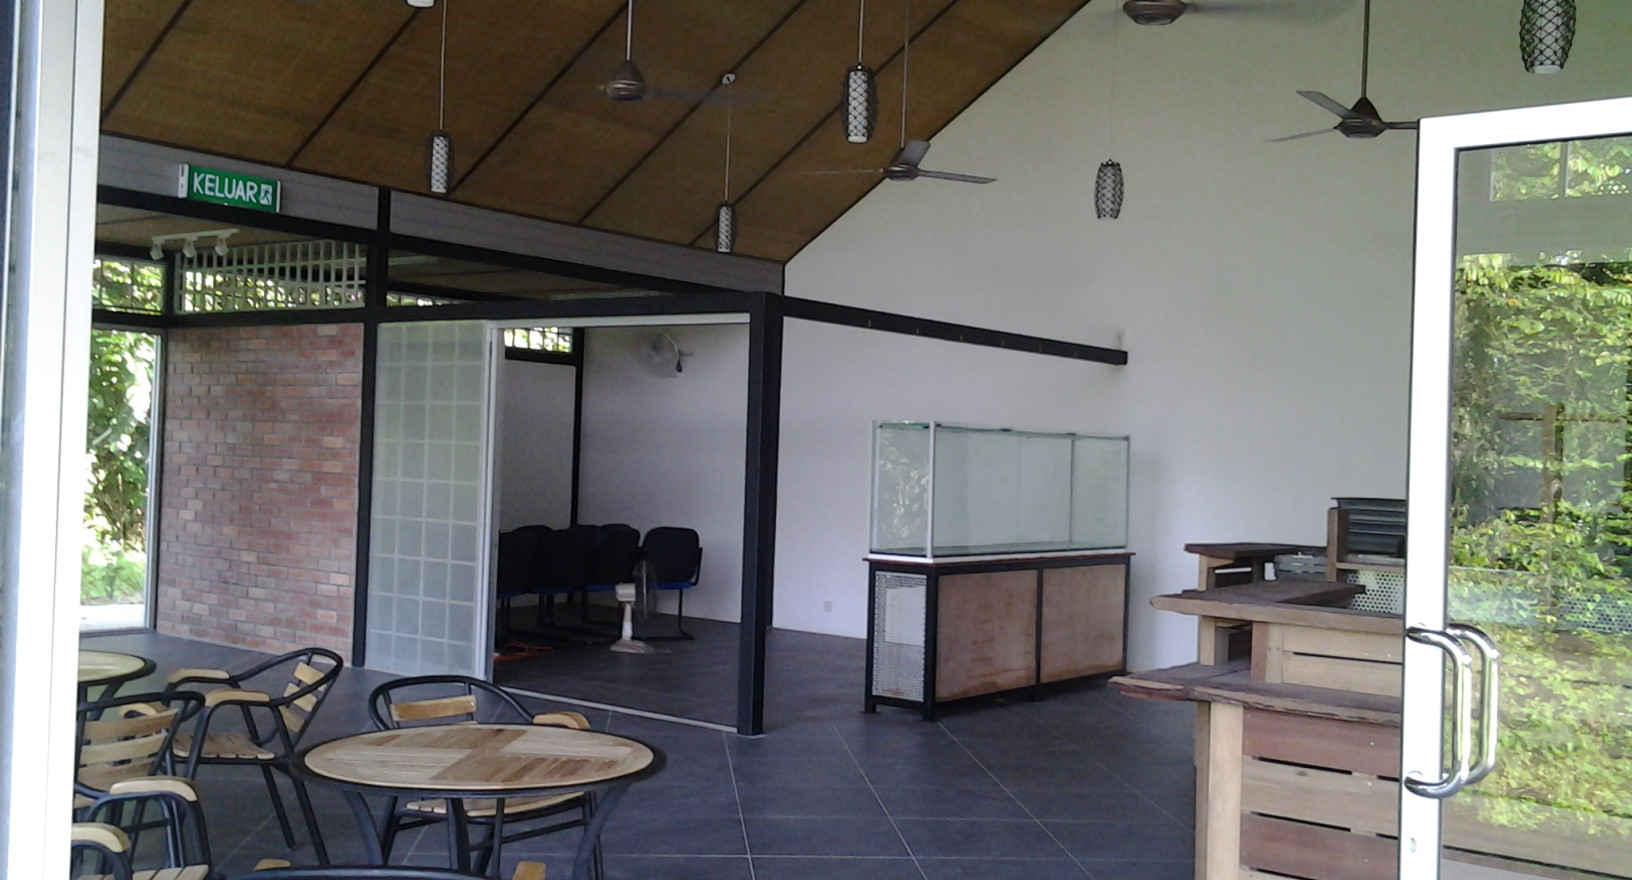 BSBCC's Visitor's Centre